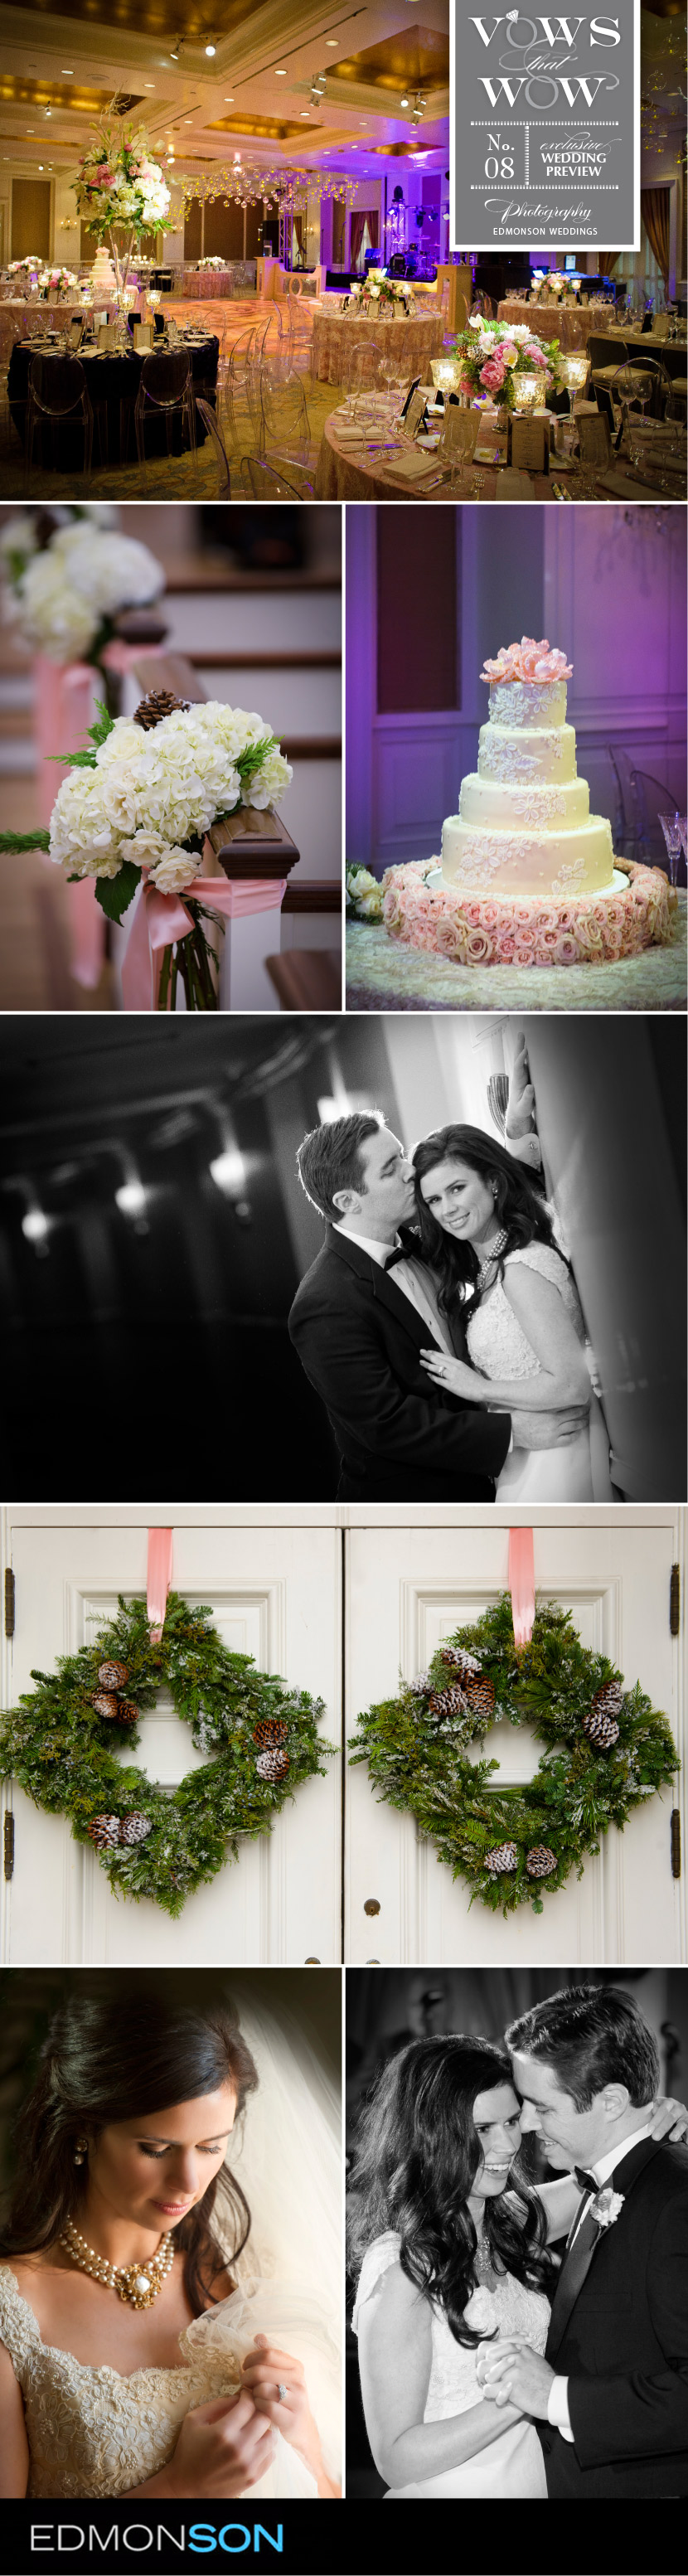 Brides of North Texas vows that wow by Dallas wedding photographers Edmonson Weddings